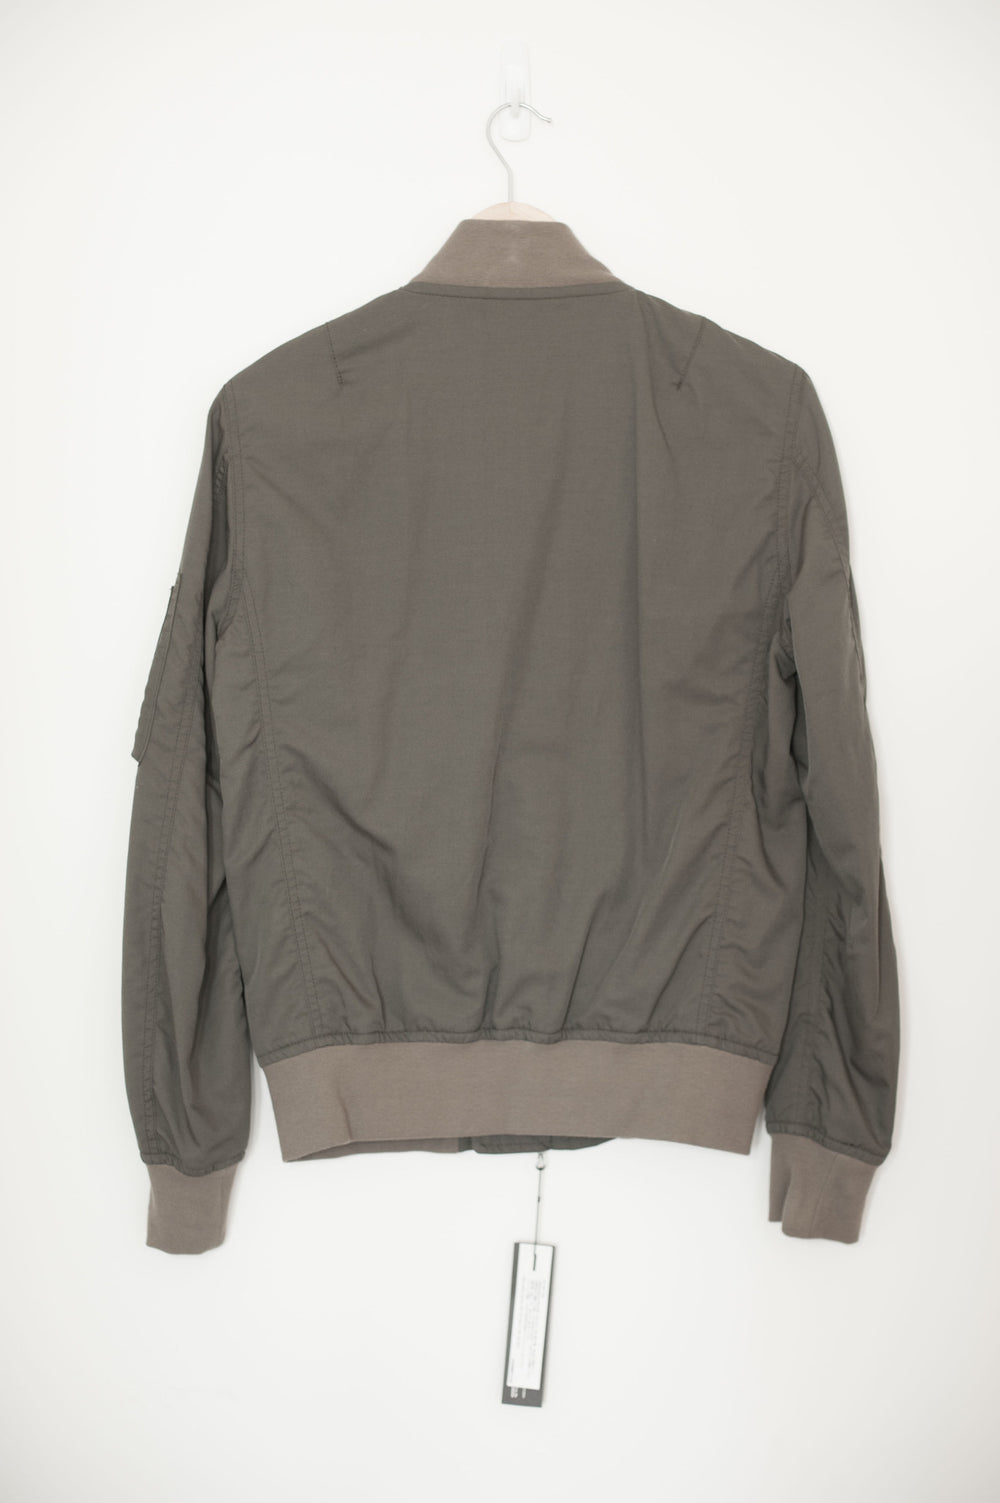 Attachment MA-1 Bomber